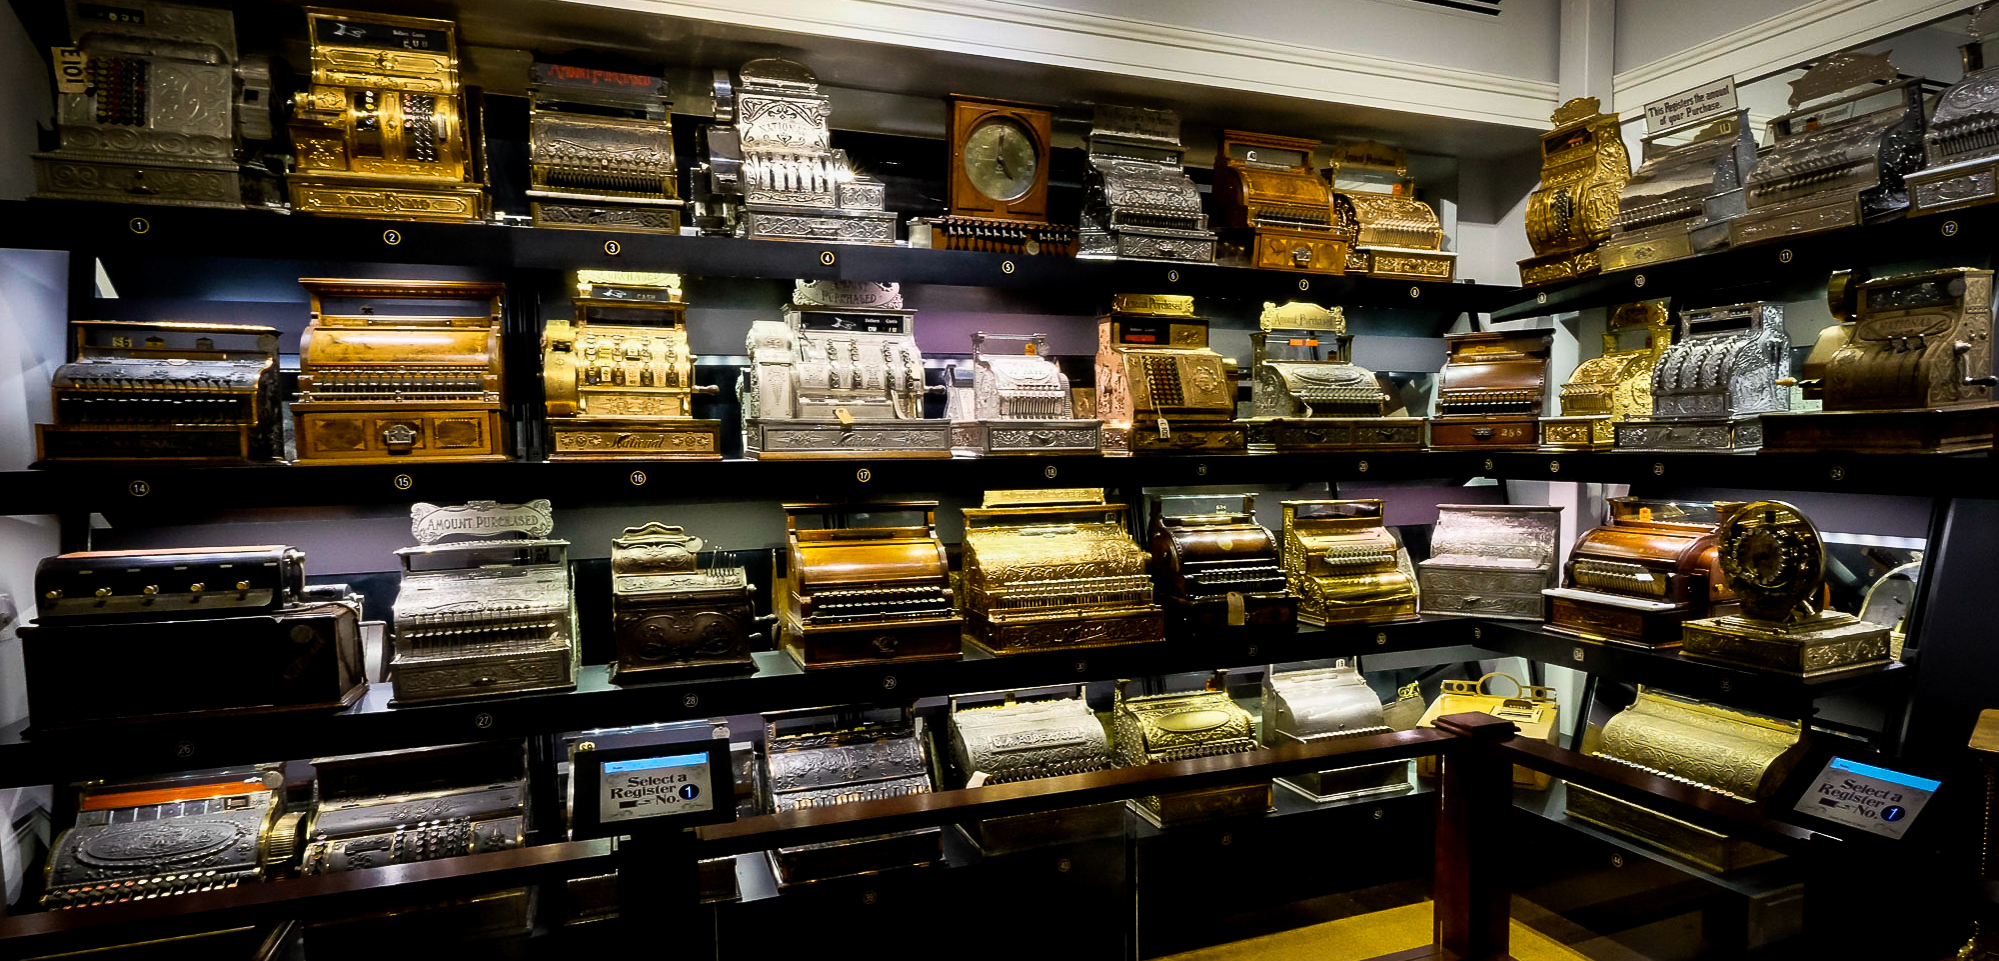 I mean who hasn't been to a cash register museum?